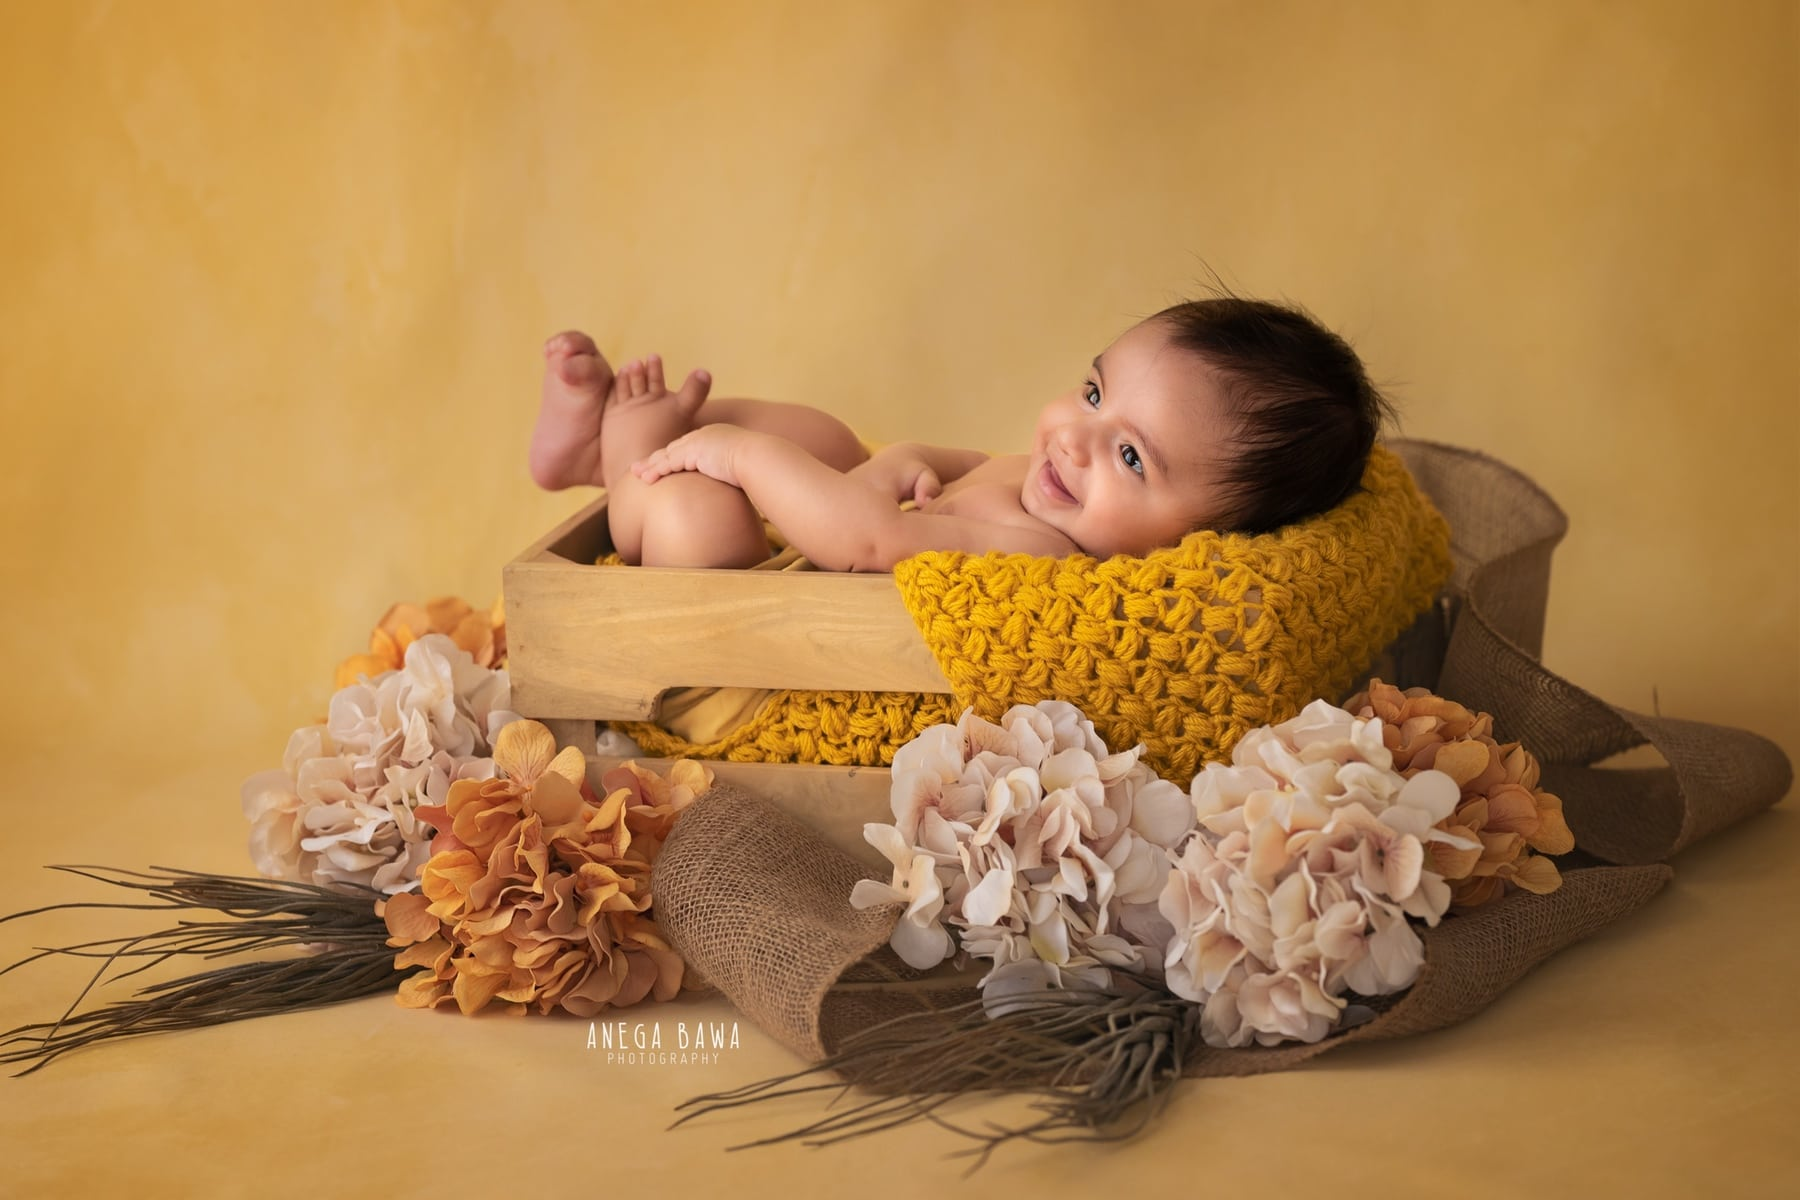 27701-yellow-floral-baby-photography-delhi-3-months-baby-boy-photoshoot-gurgaon-anega-bawa